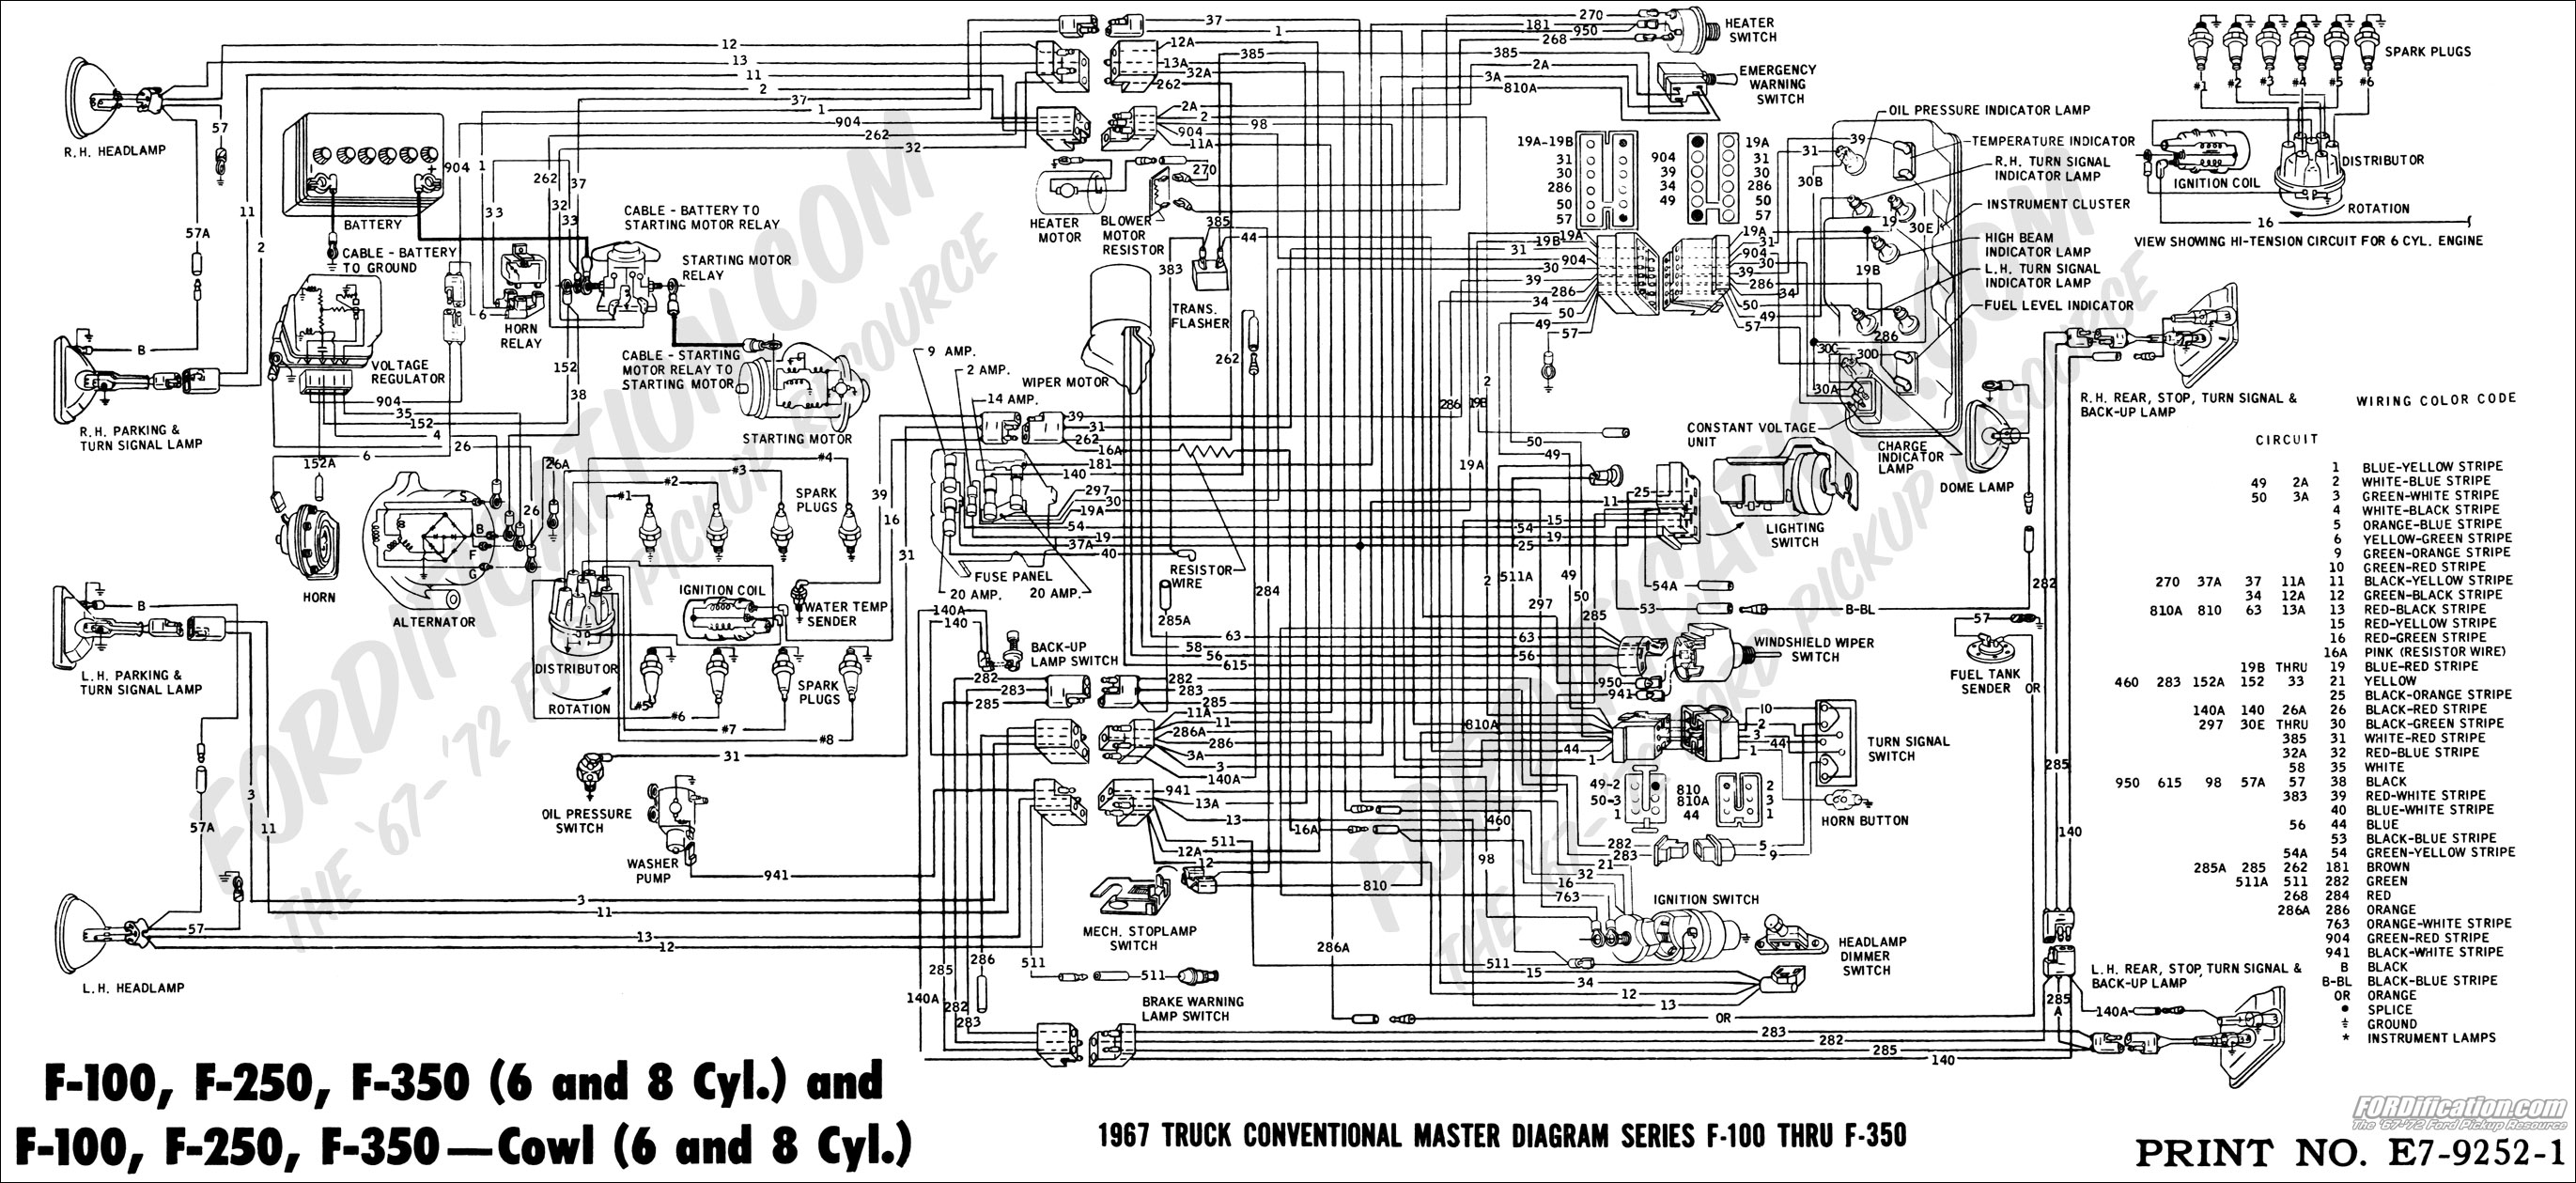 67masterdiagram ford truck technical drawings and schematics section h wiring 2012 ford e350 wiring diagram at reclaimingppi.co